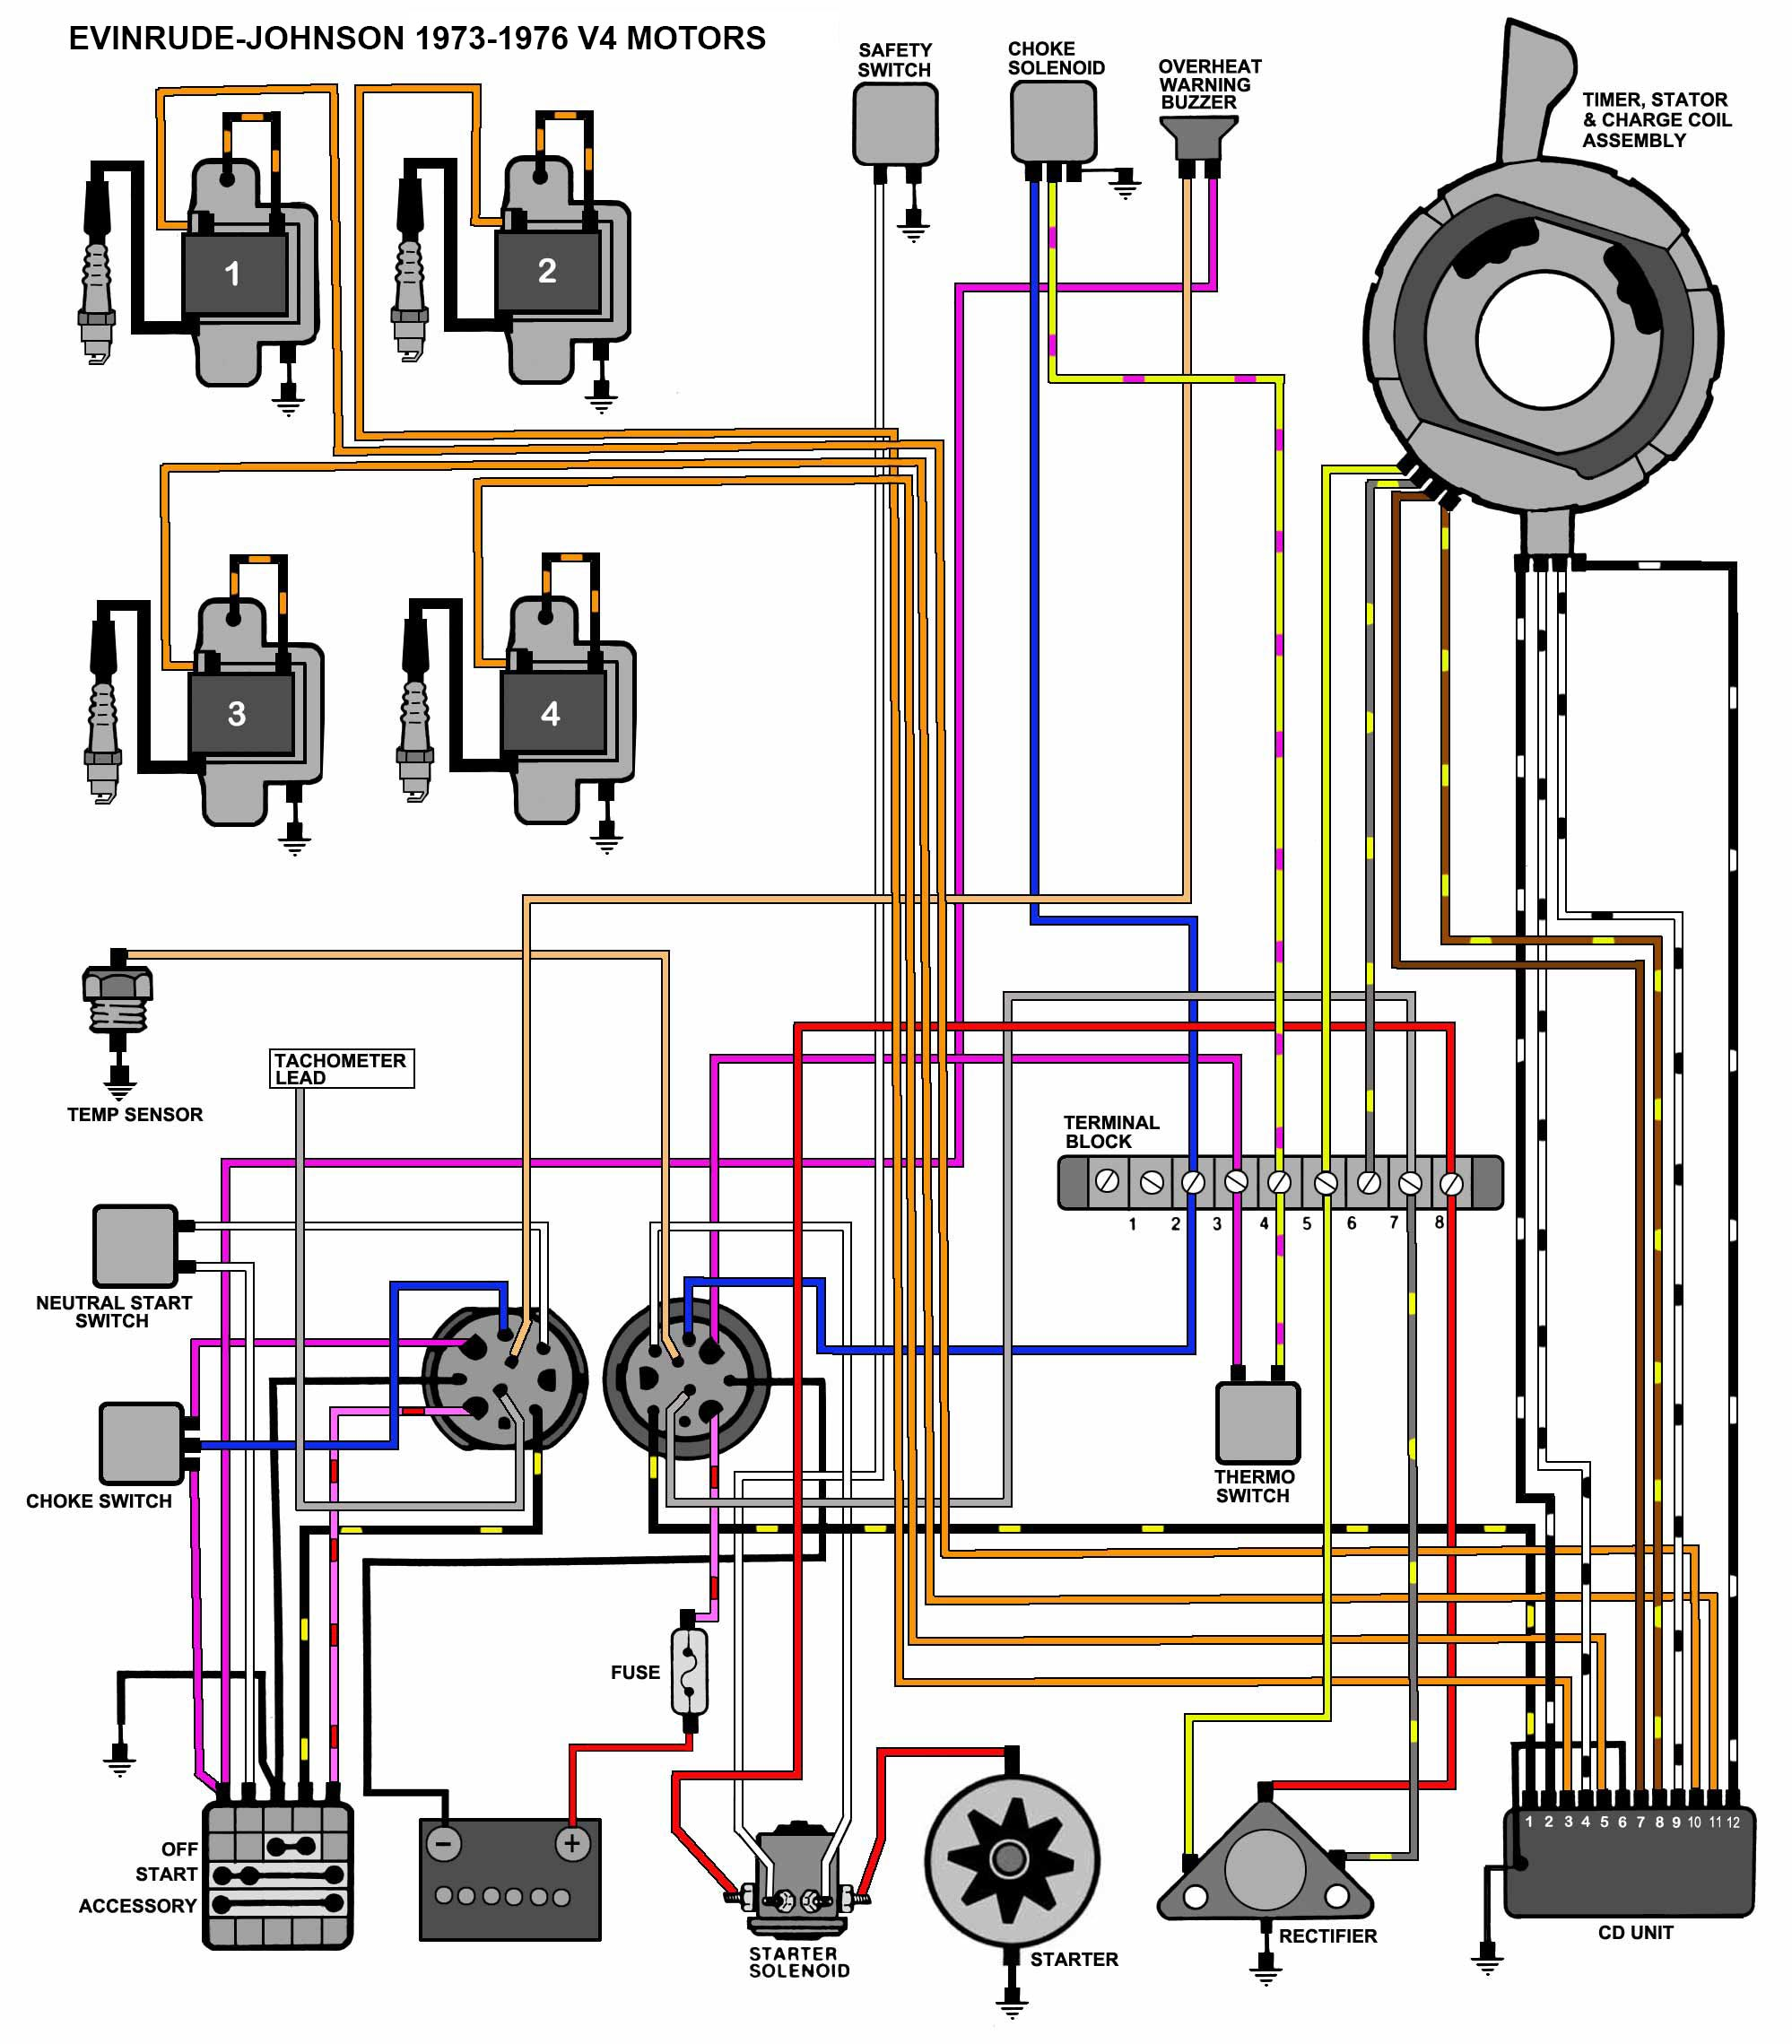 1979 glastron wiring diagram evinrude johnson outboard wiring diagrams -- mastertech ... 1979 vw wiring diagram #4